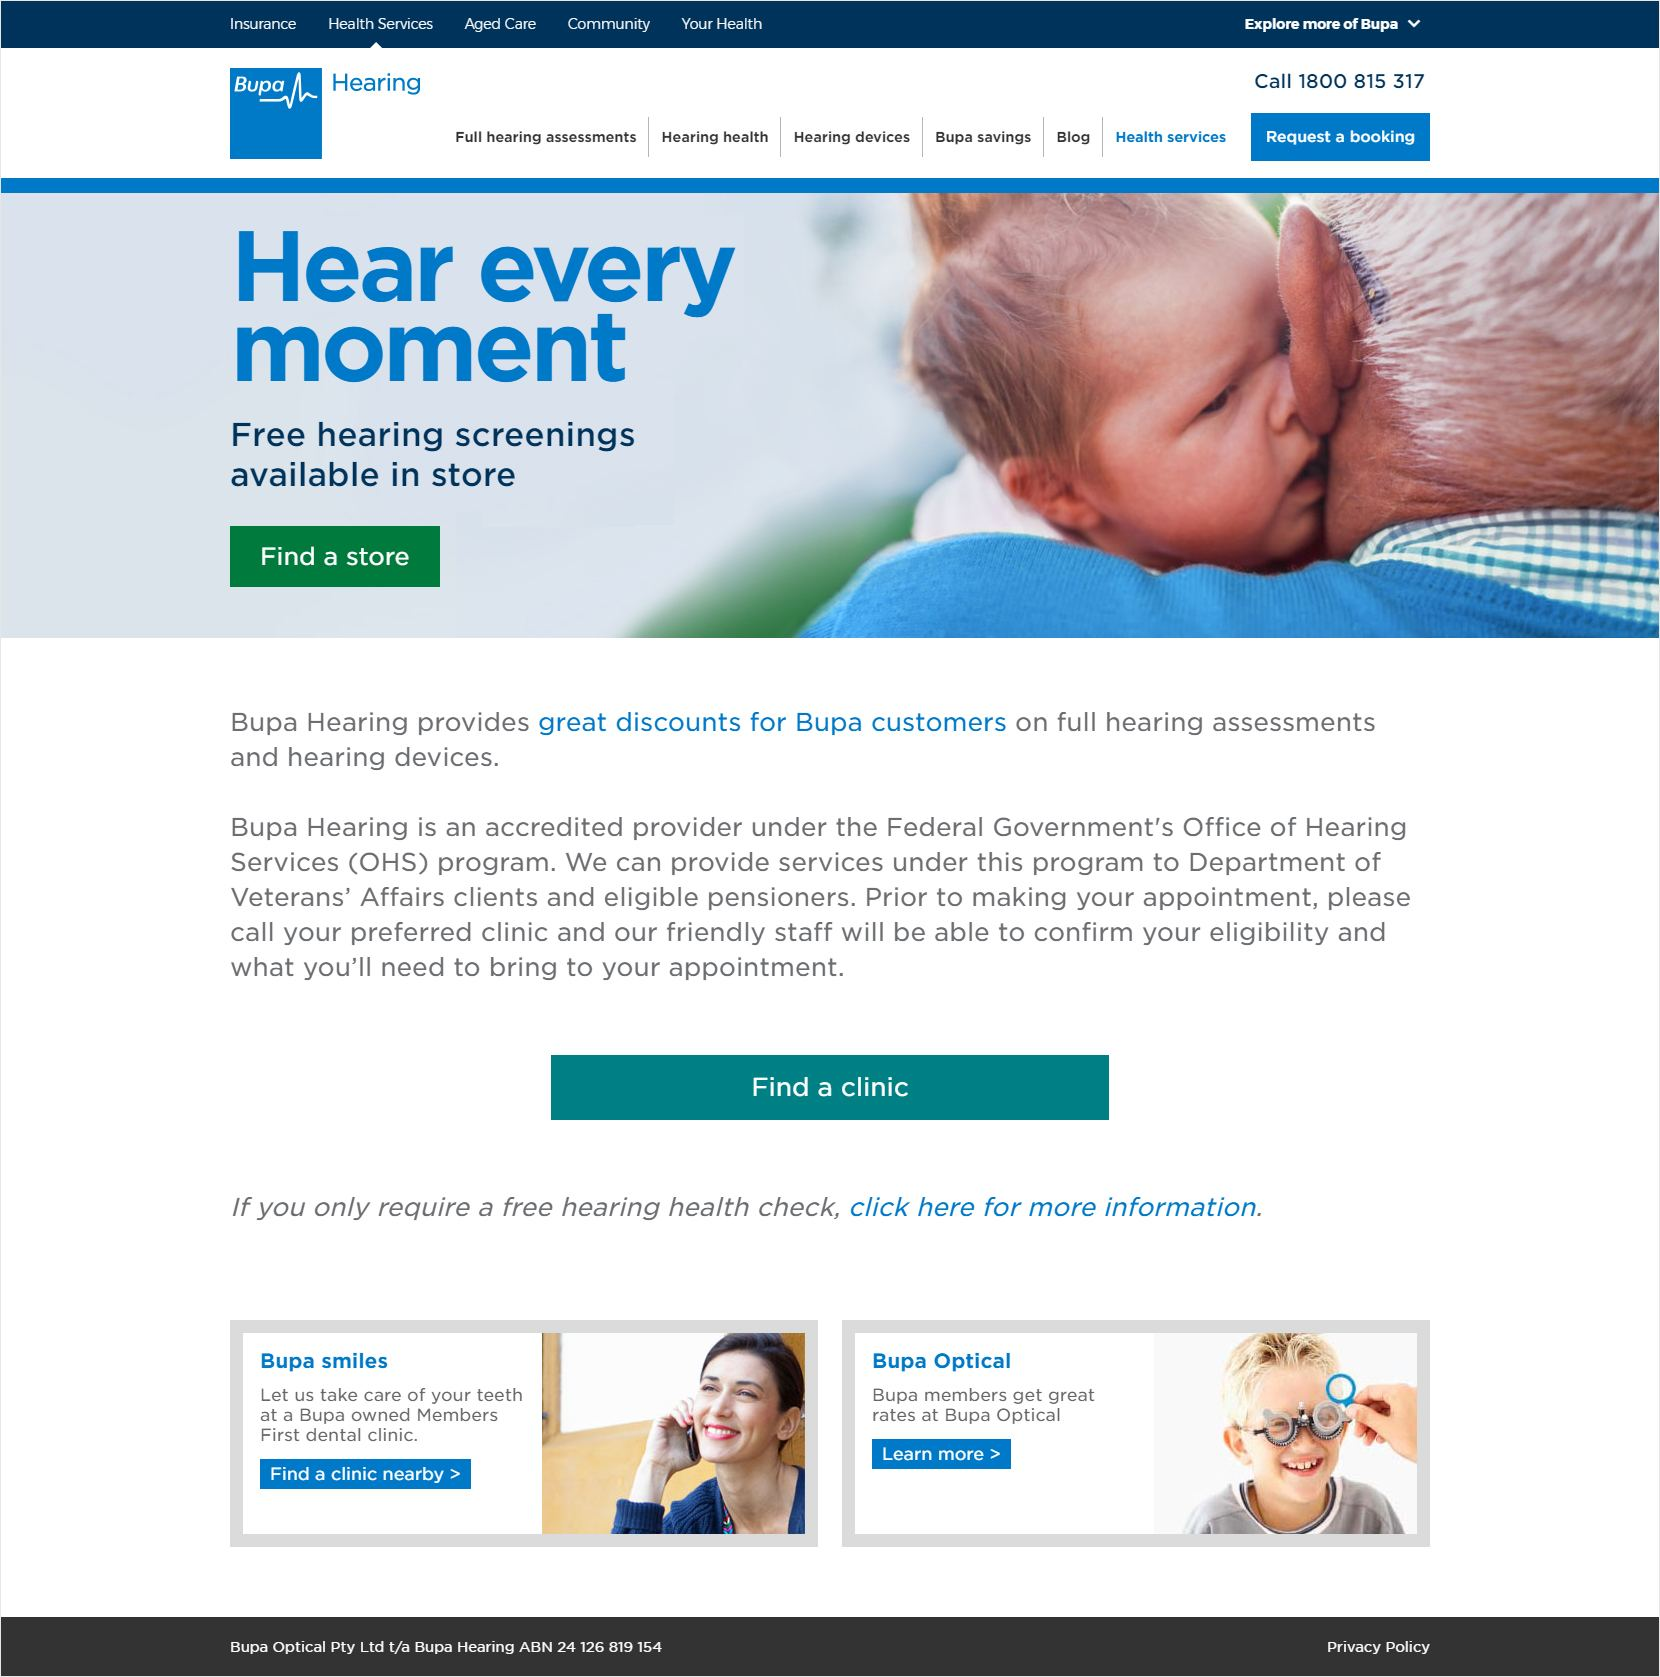 Bupa Hearing Home Page